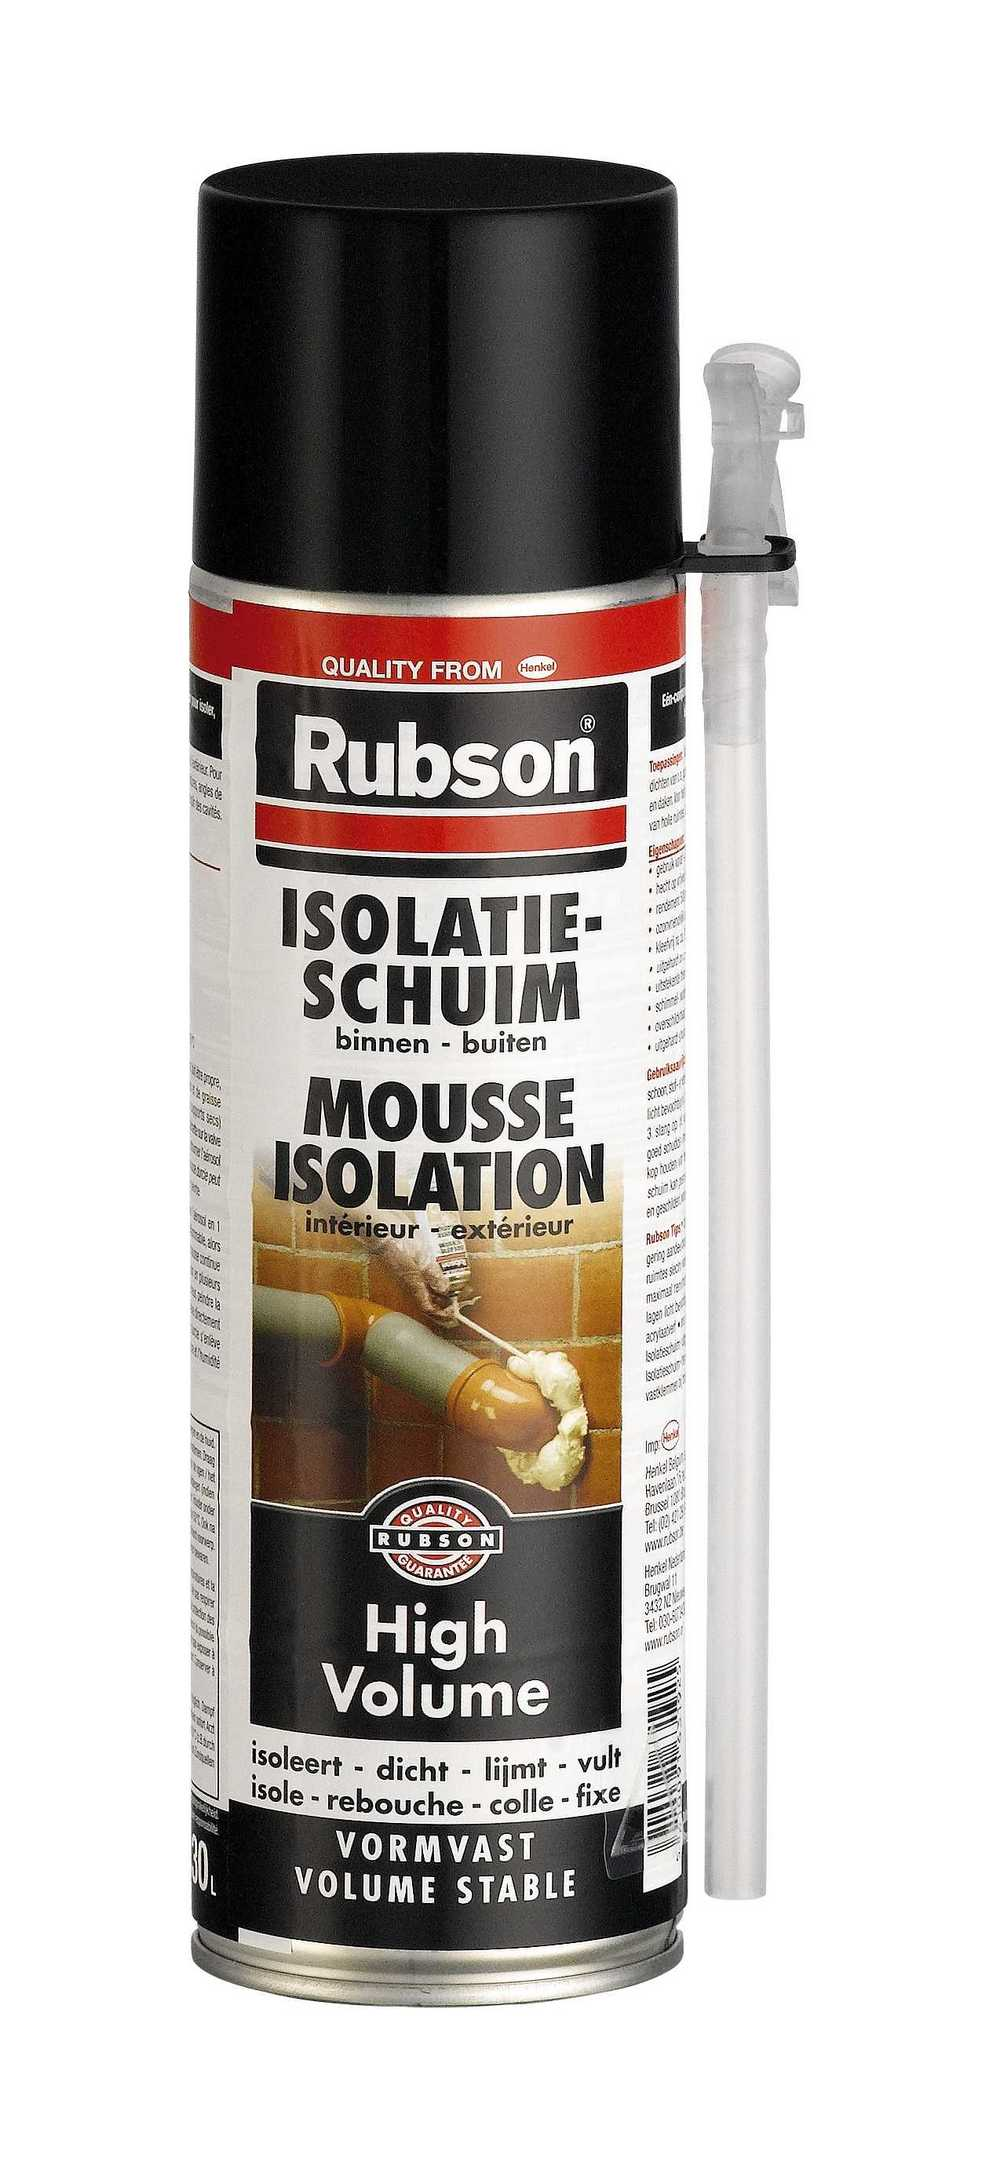 RUBS.HIGH VOLUME 500ML+50%G  RUBSON ISOL.H.VOL 500ML+50%